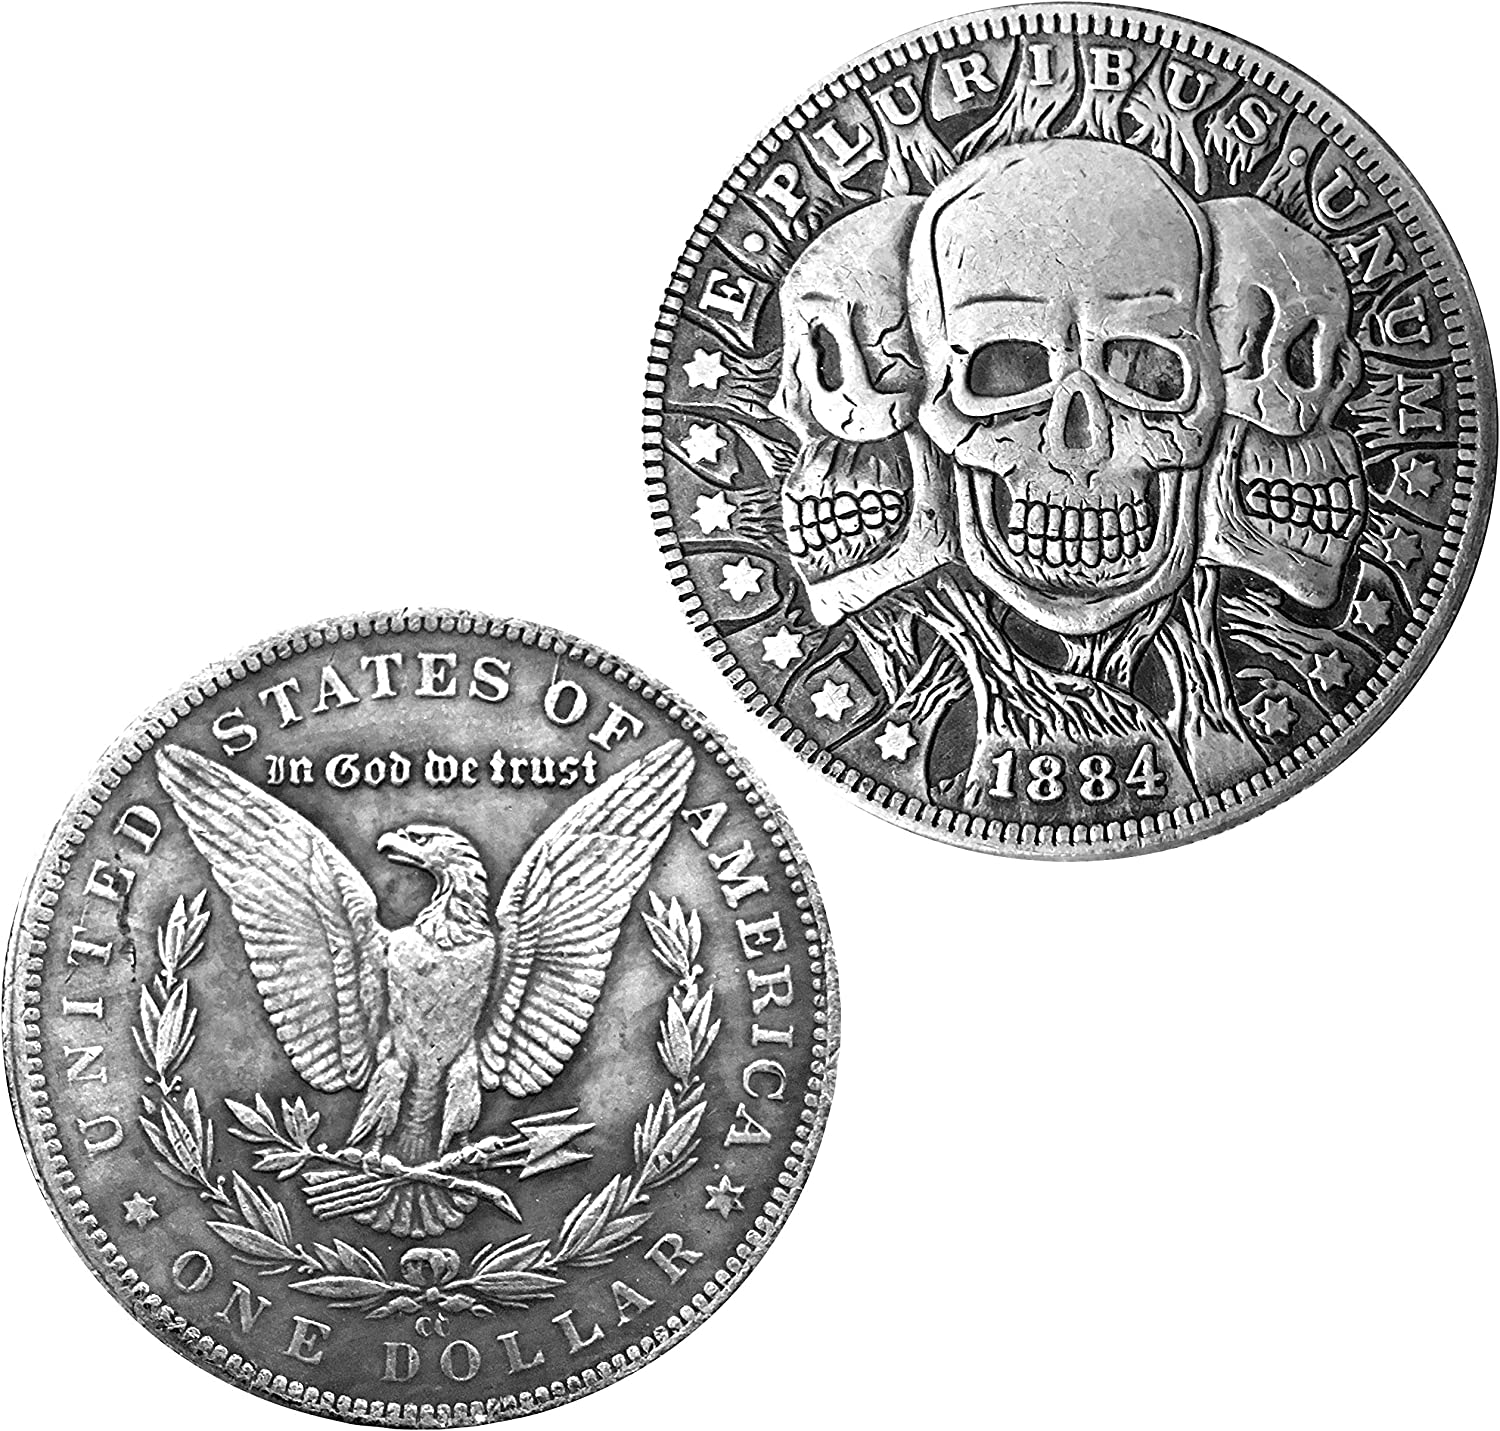 Three Faces of Death Novelty Heads Tails Good Luck Token Commemorative Coin